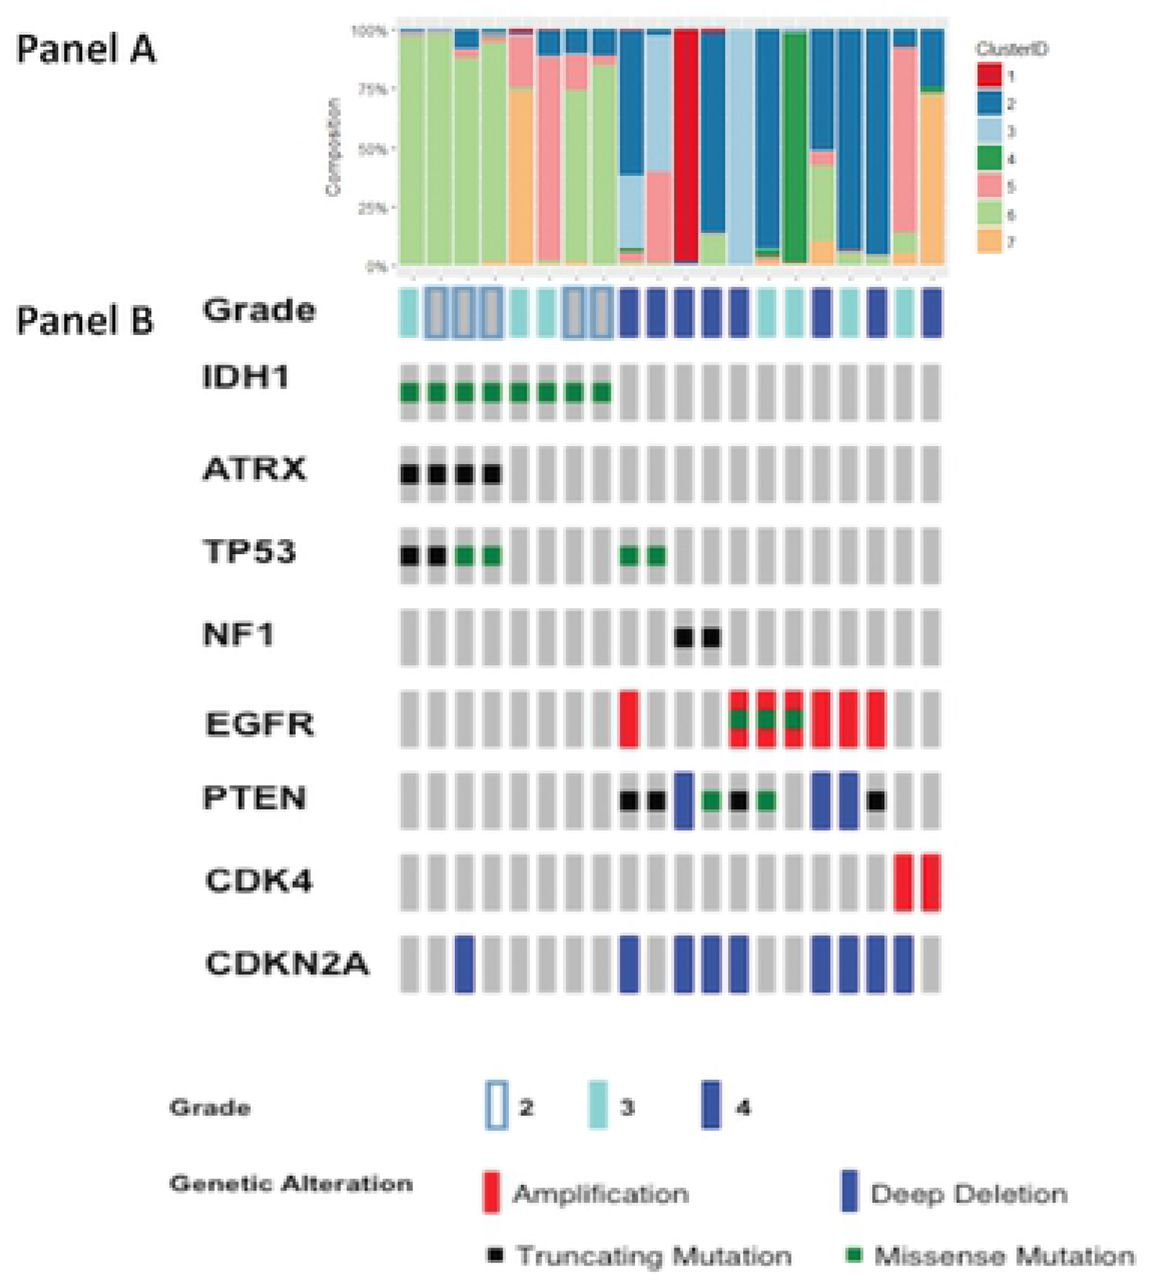 Tumor cell phenotype and heterogeneity differences in IDH1